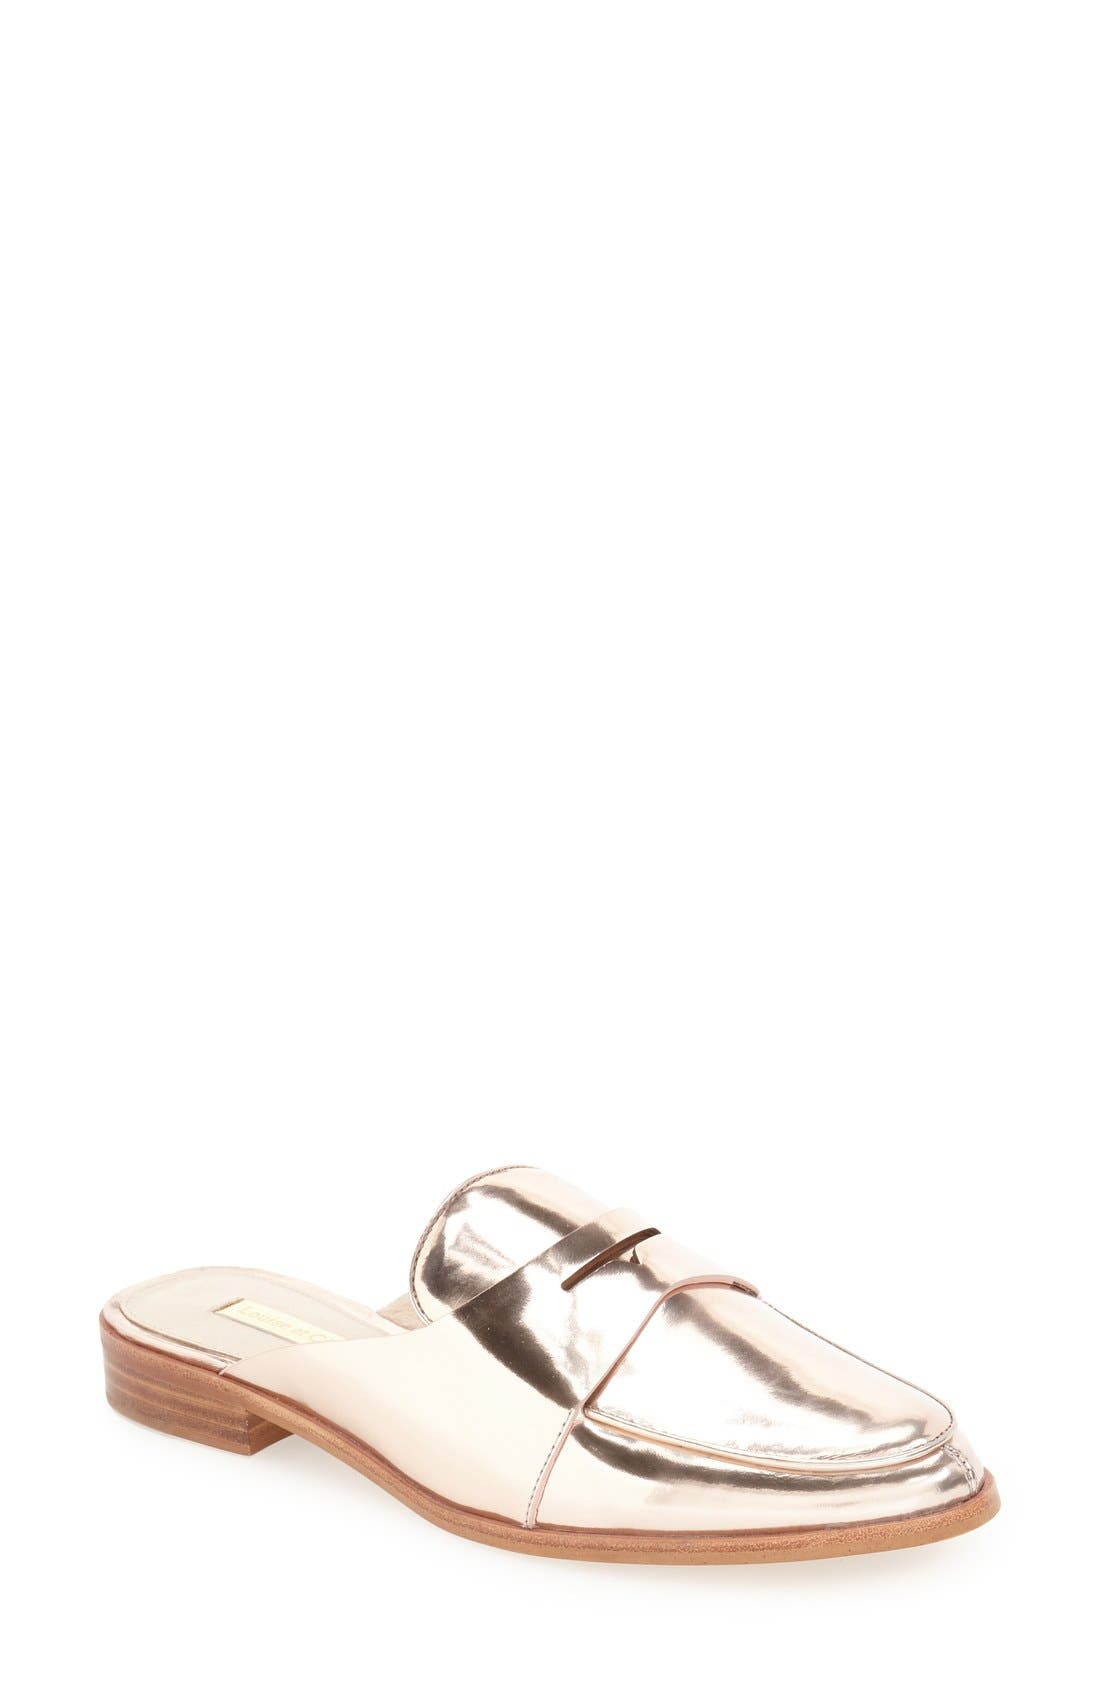 Alternate Image 1 Selected - Louise et Cie Dugan Flat Loafer Mule (Women)